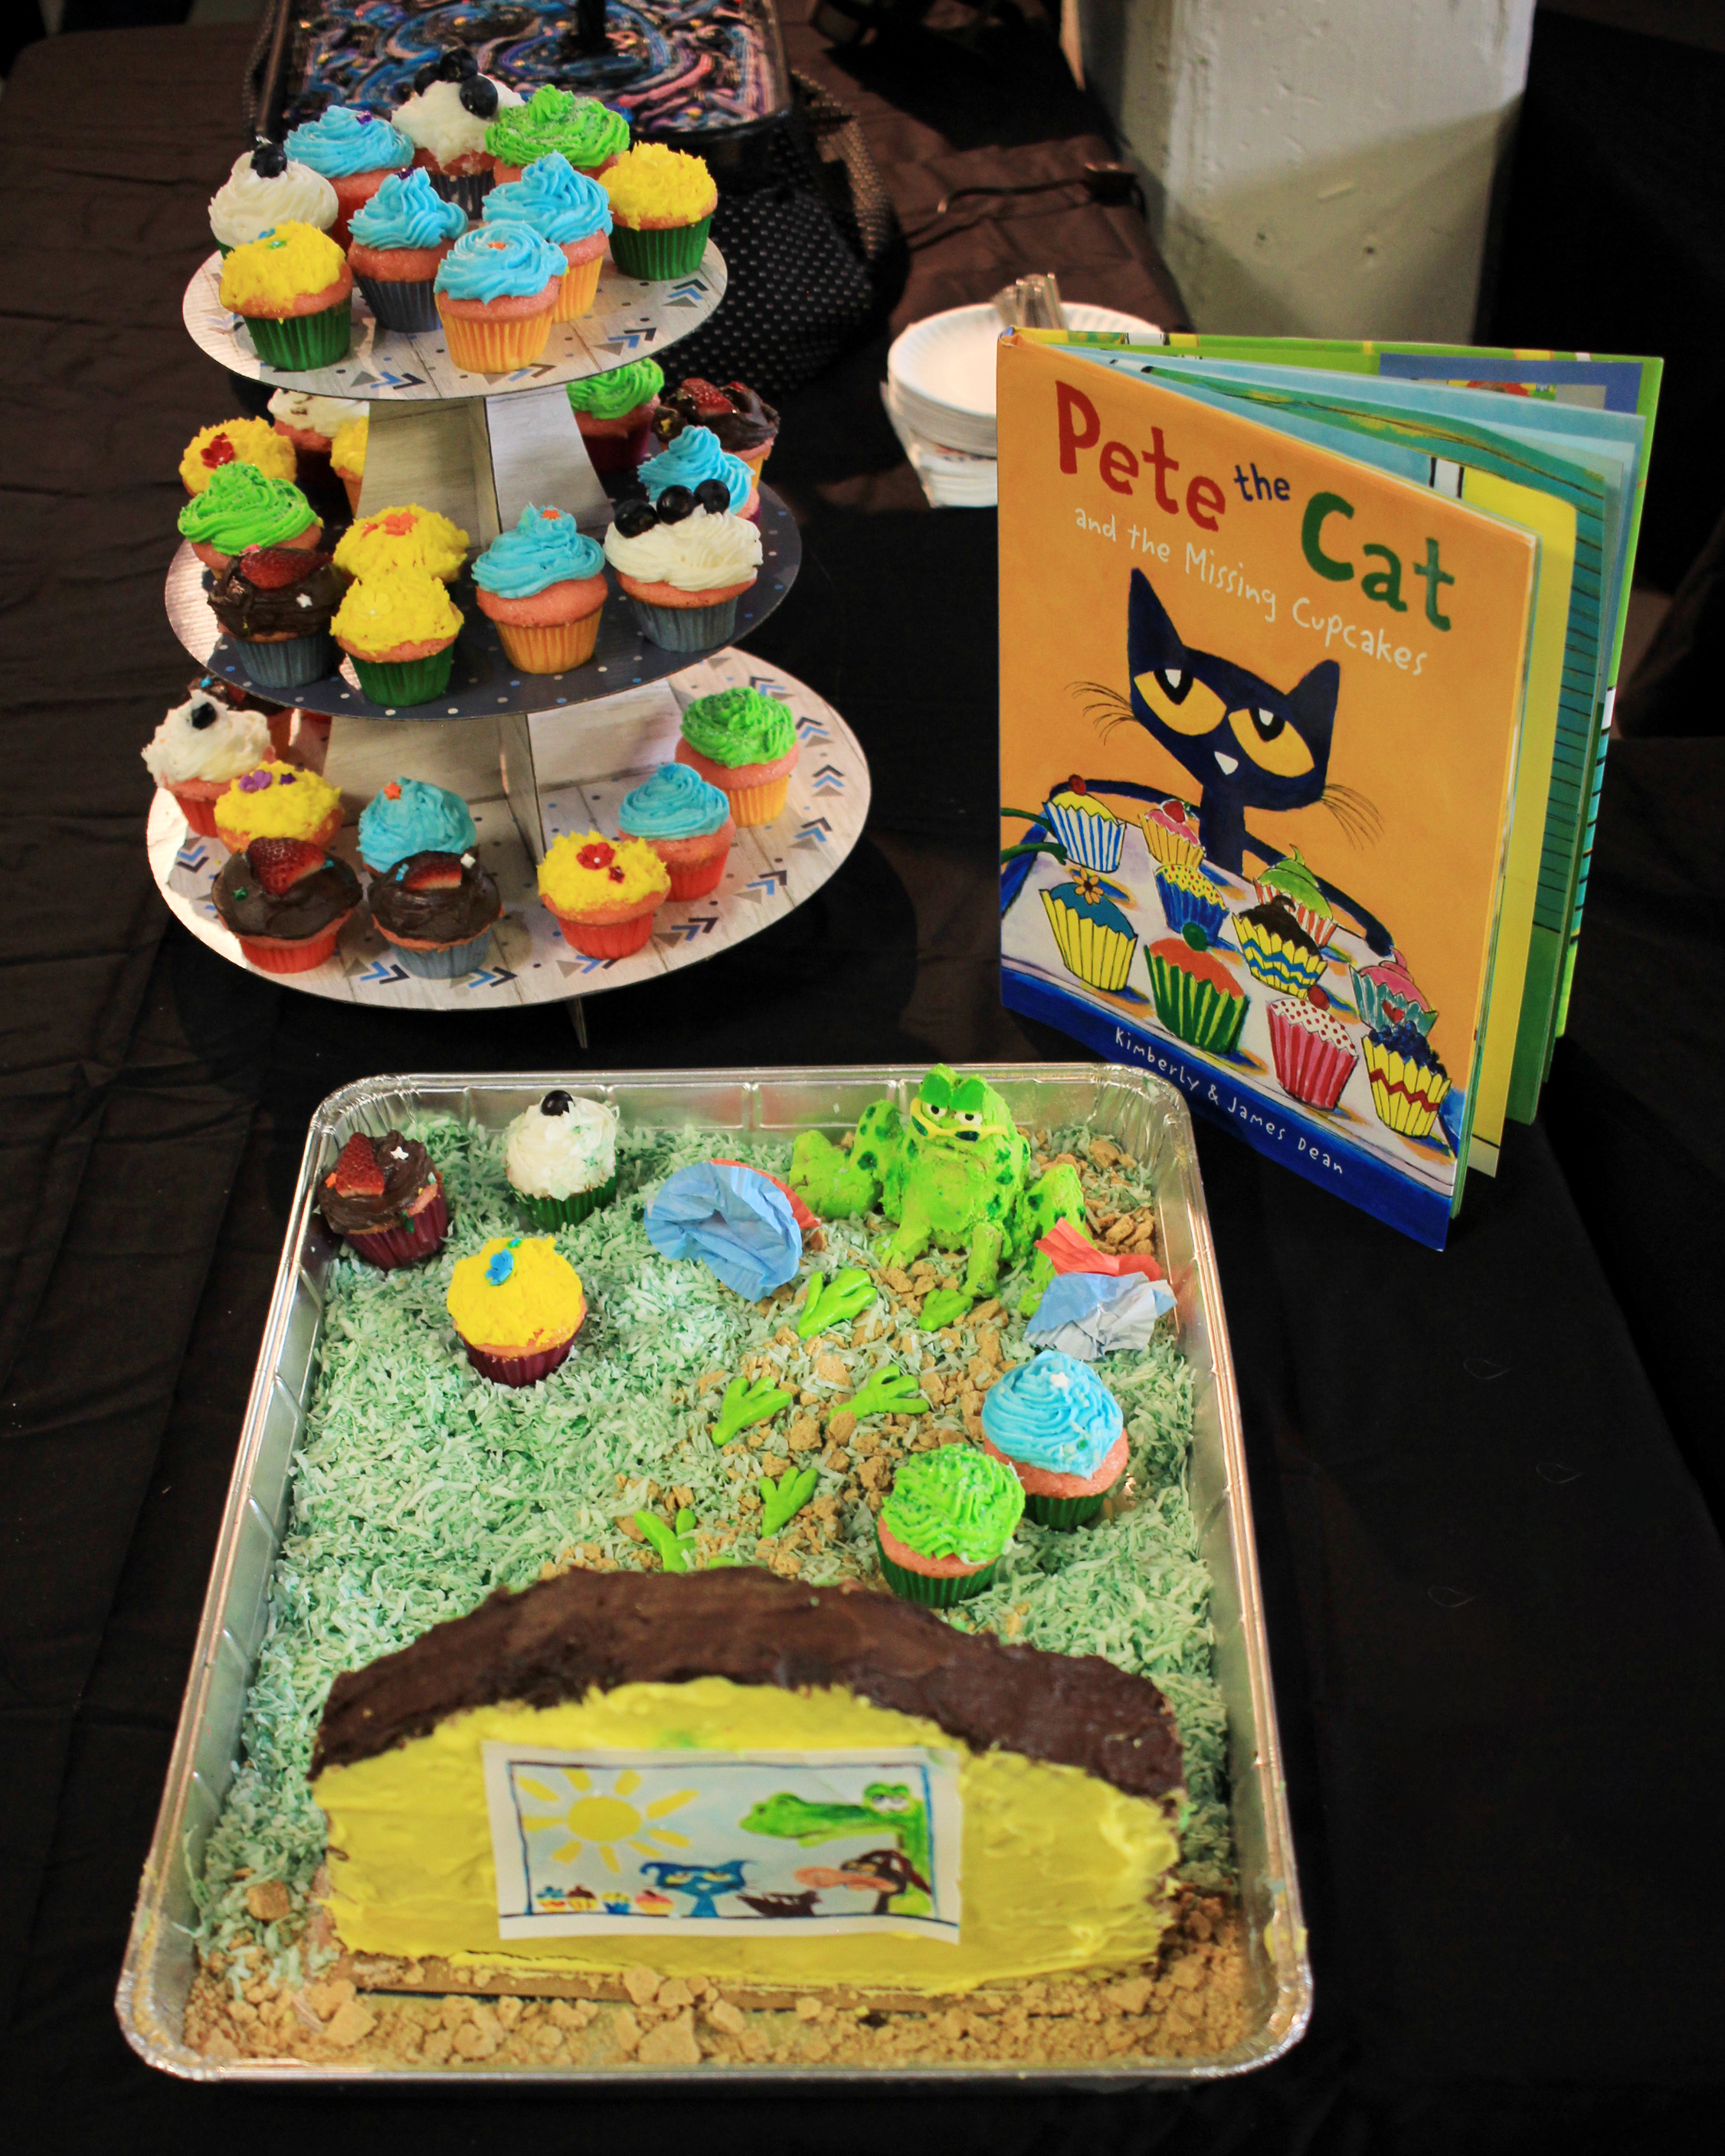 """Pete the Cat and the Missing Cupcakes"" by Emily Basse"